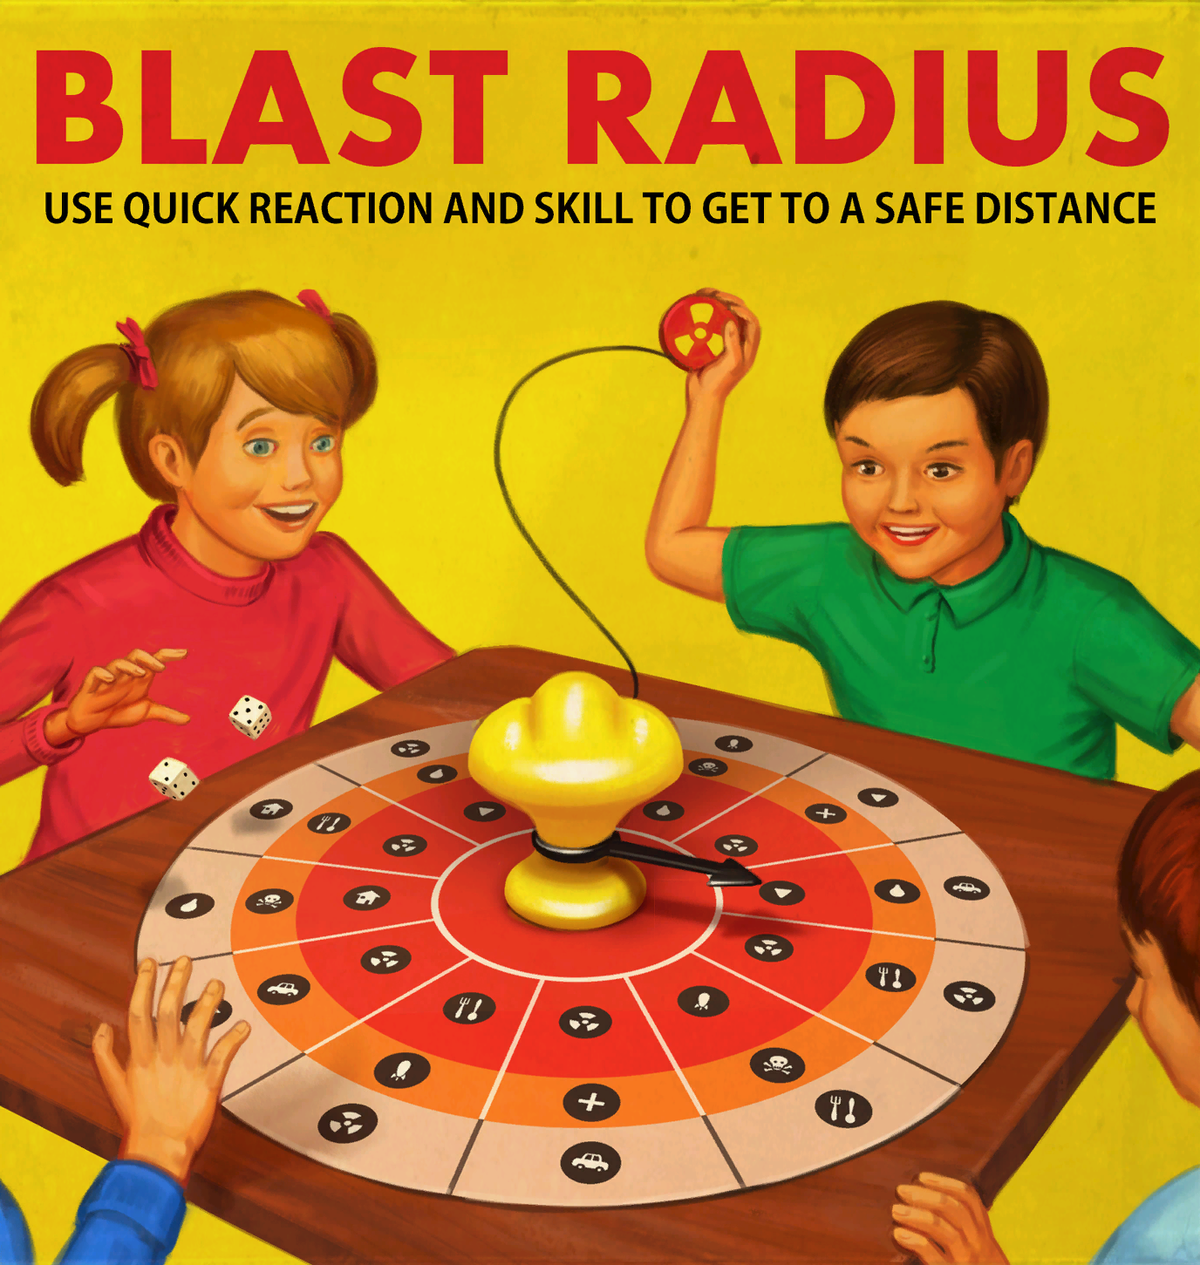 Blast Radius board game - The Vault Fallout Wiki - Everything you